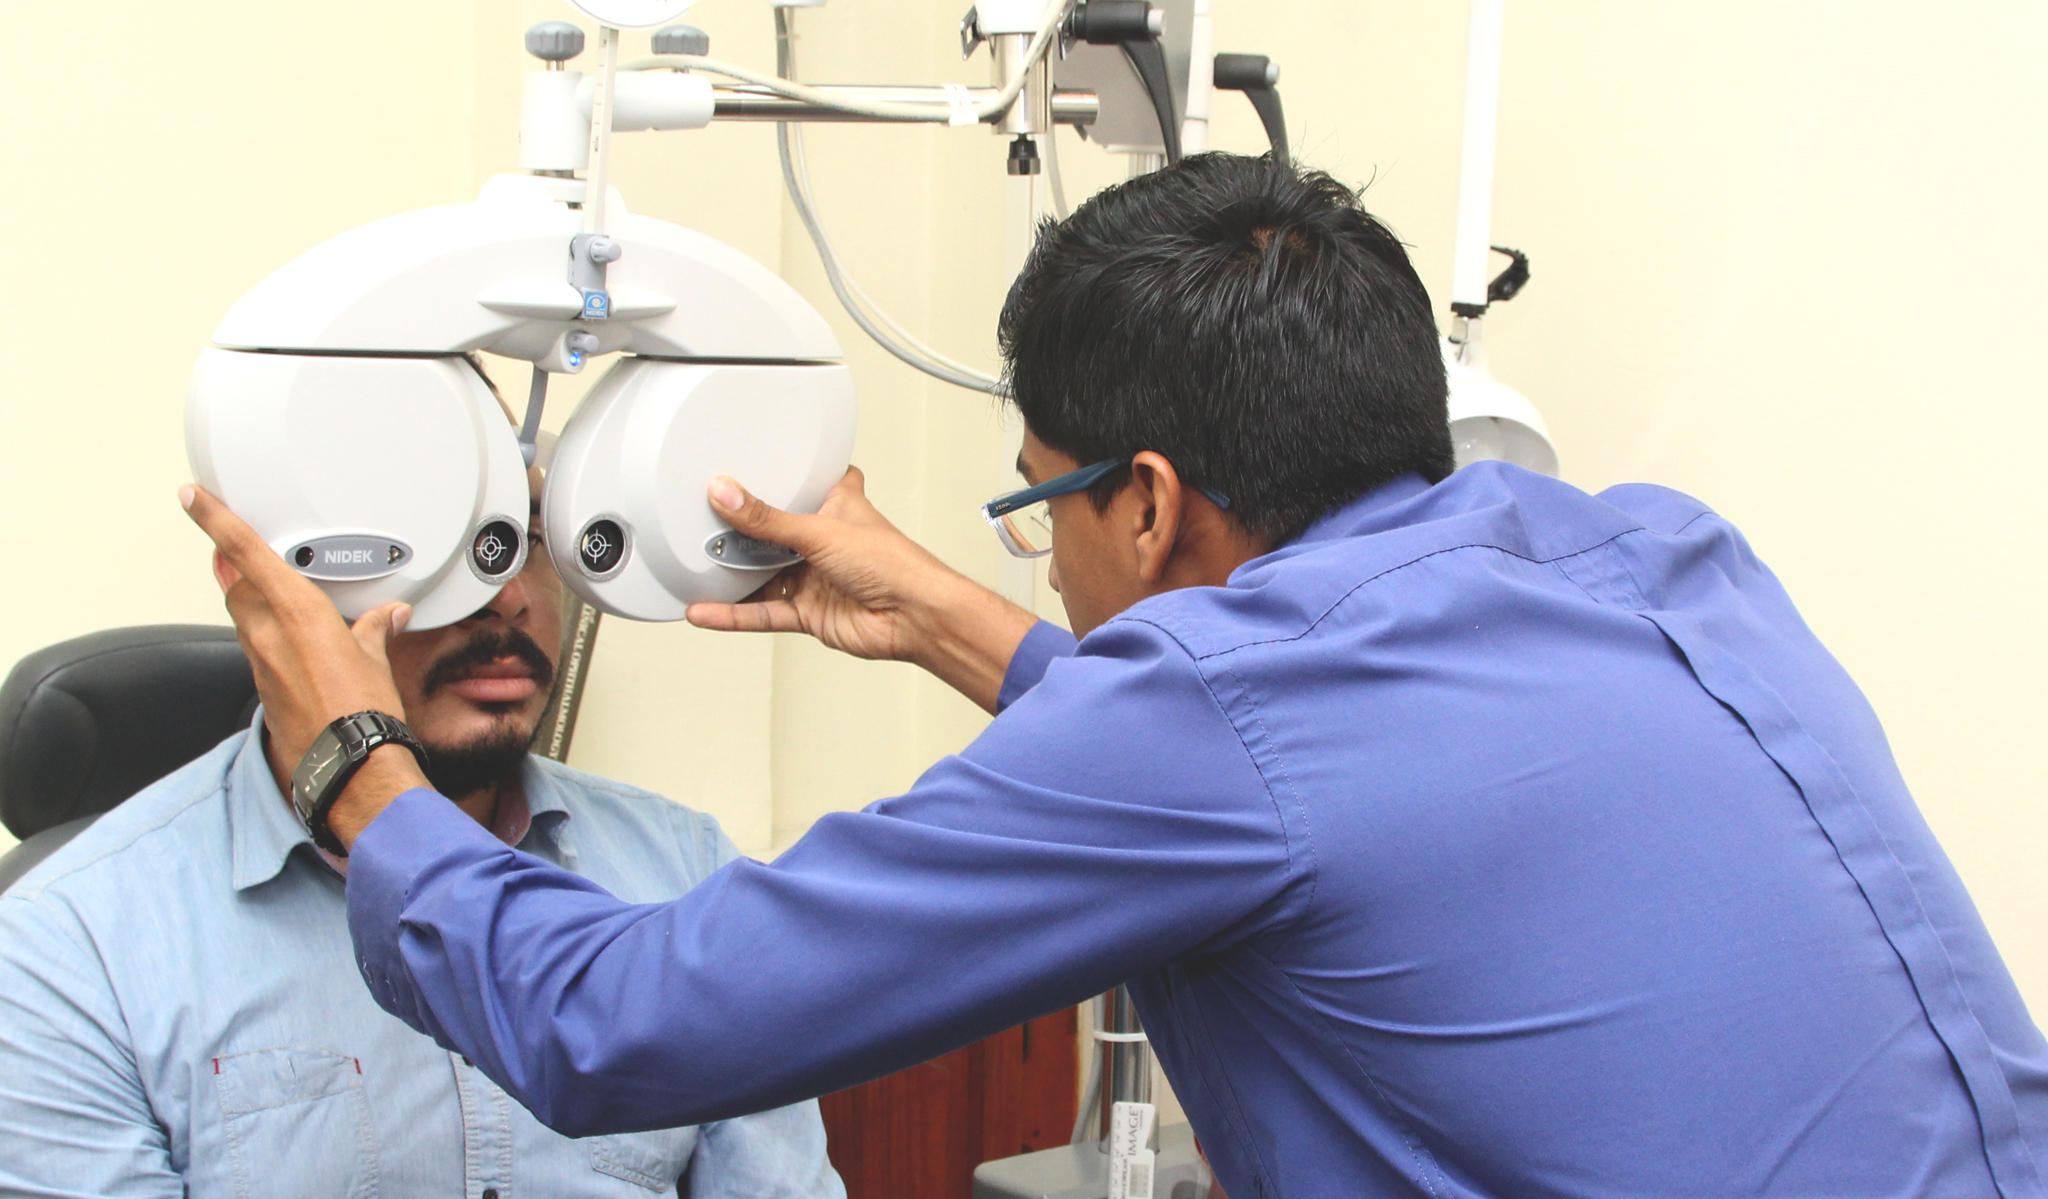 Our optometrists are happy to examine you, and ensure that your eyes are healthy and your vision is optimal.